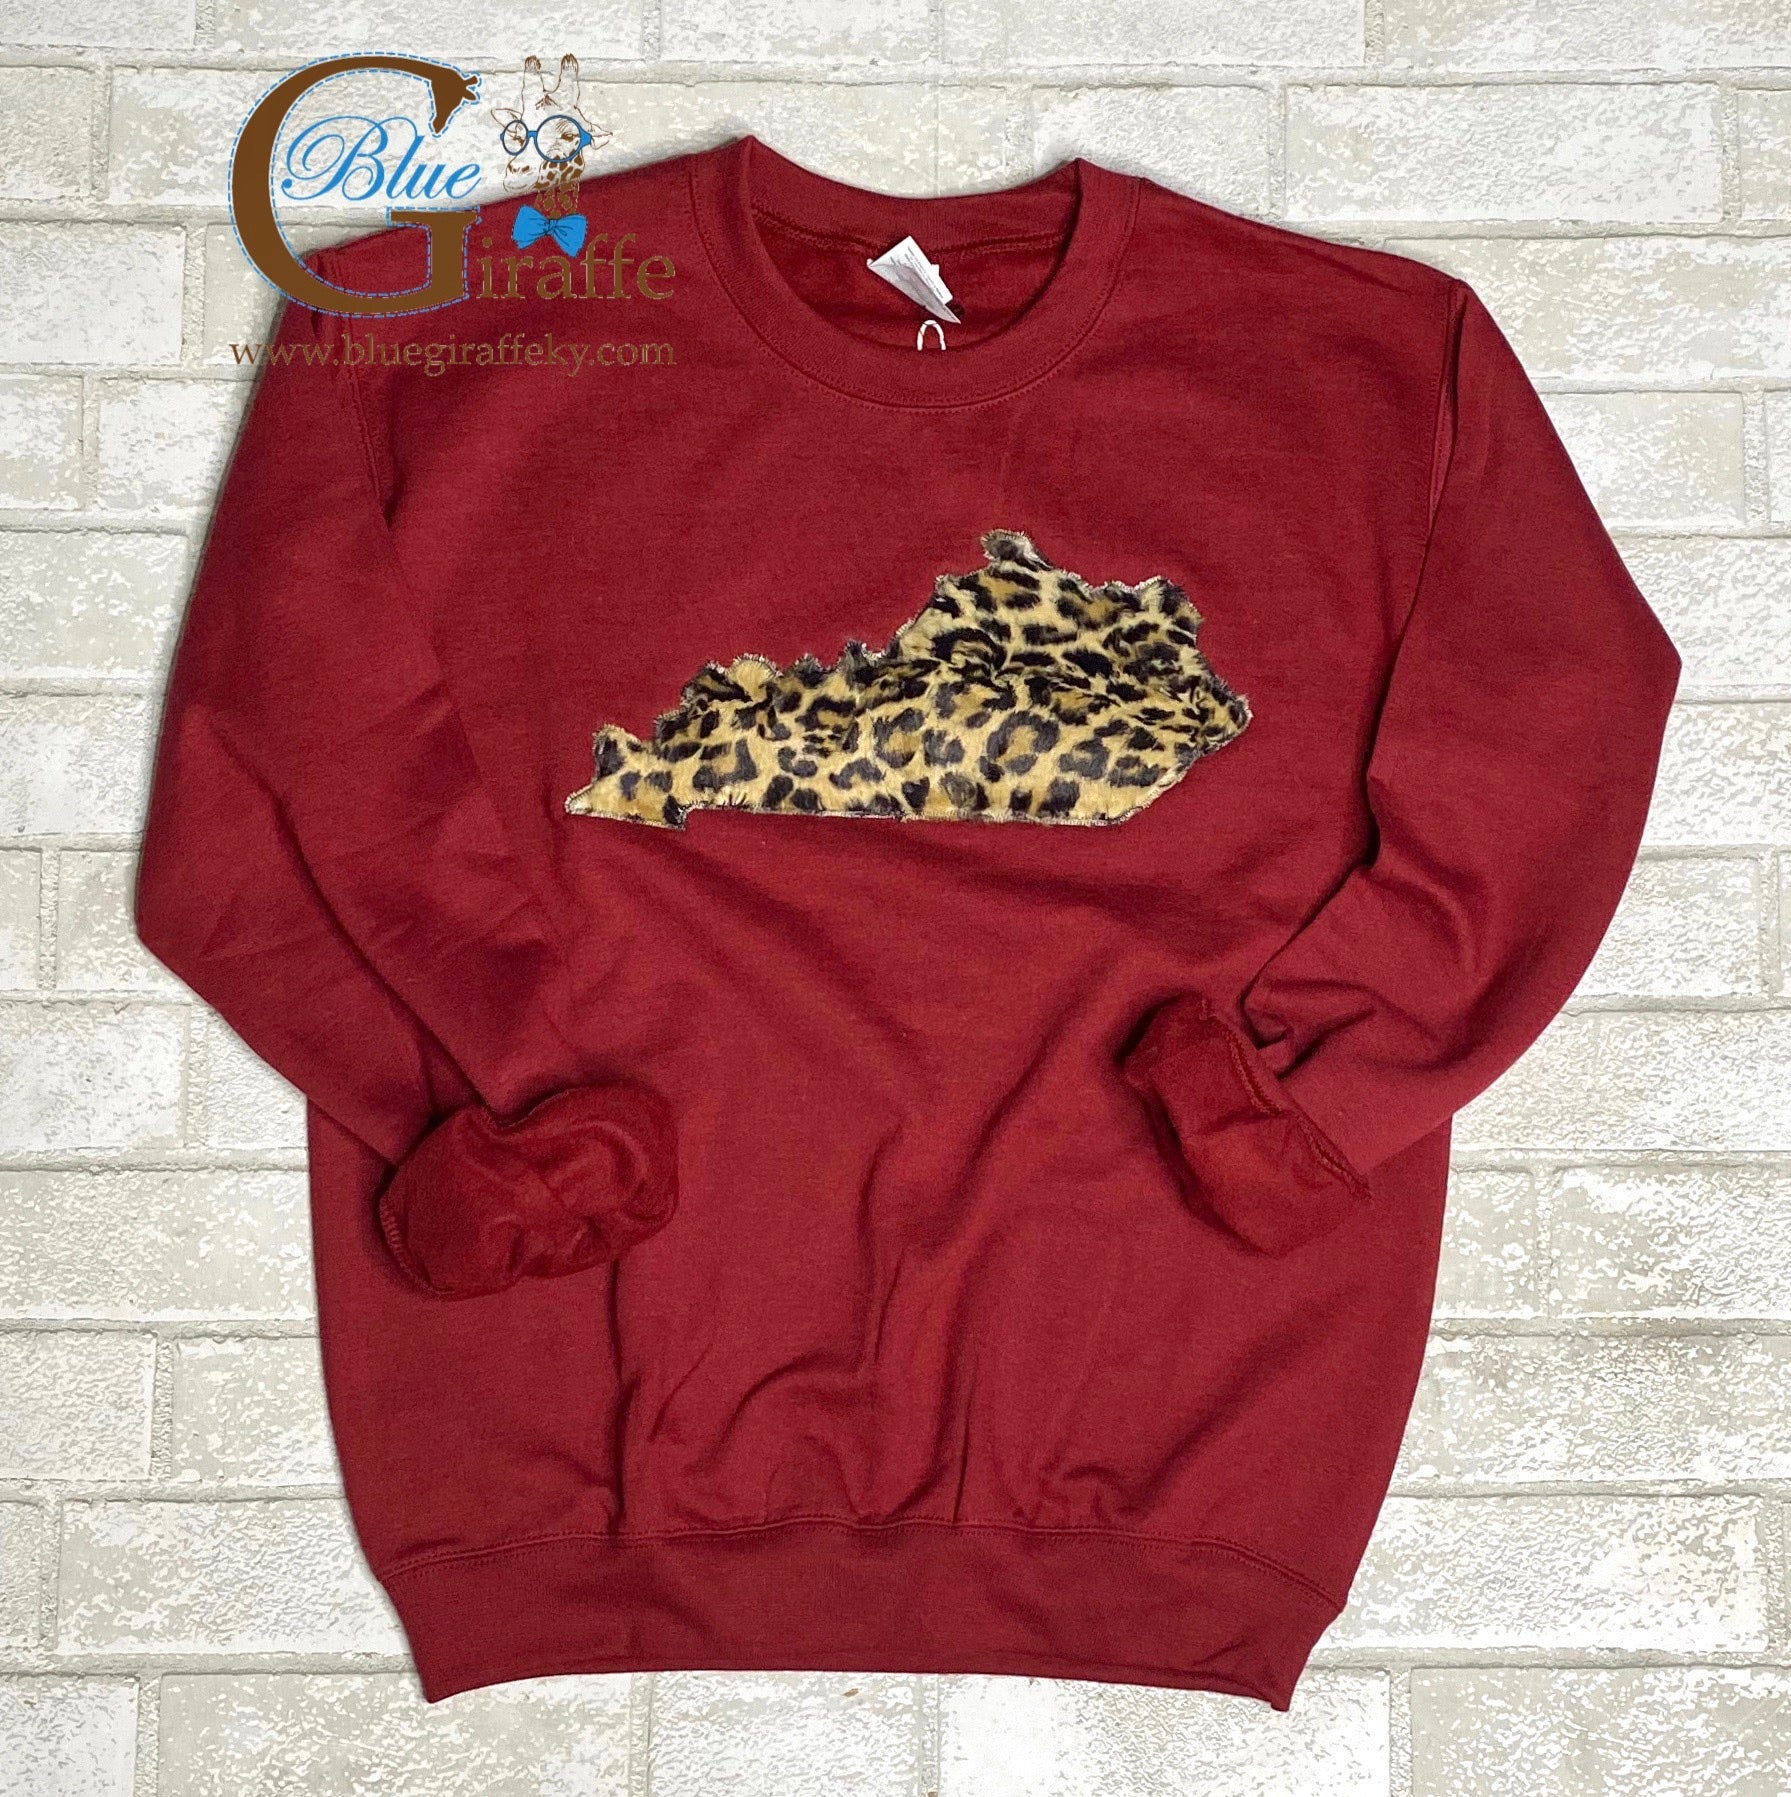 Faux Fur Leopard State Applique Sweatshirt